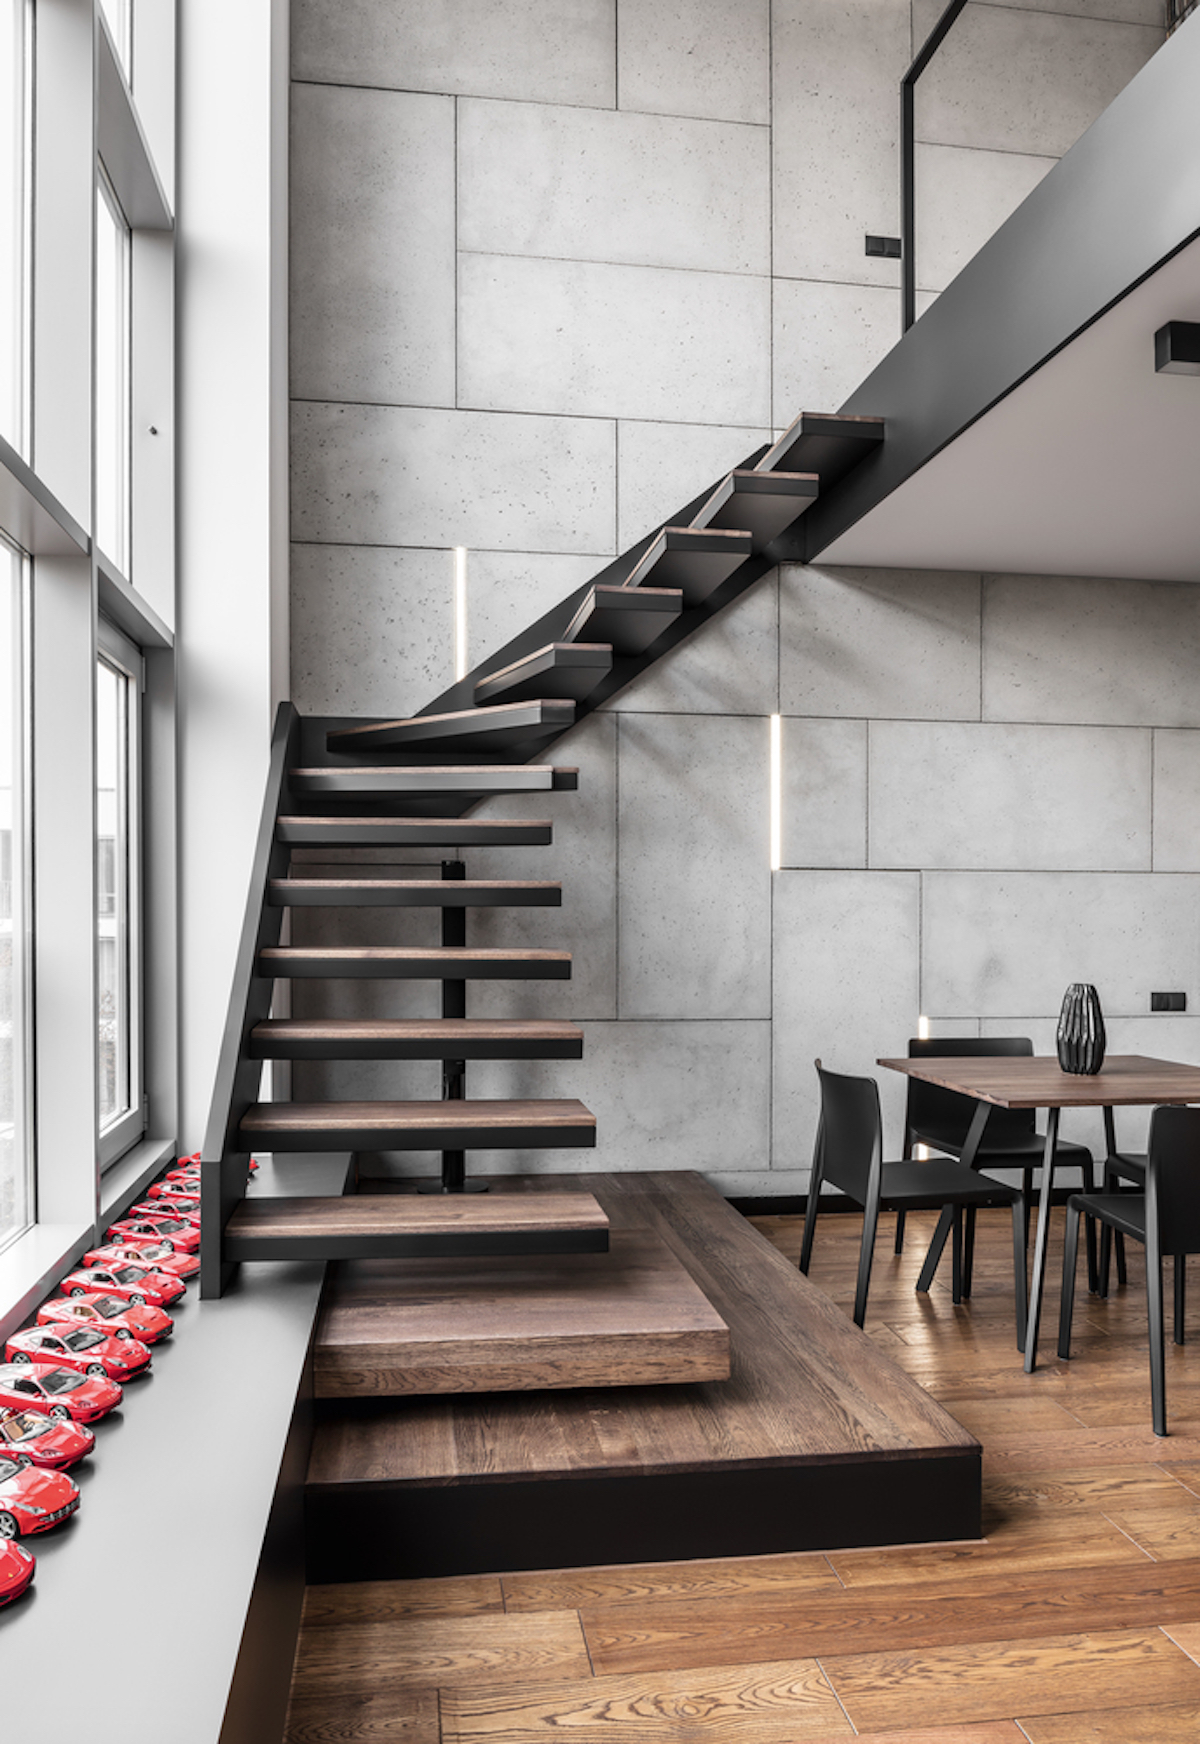 Blackened metal is softened with natural wood, and a floating design gives an industrial touch to the space